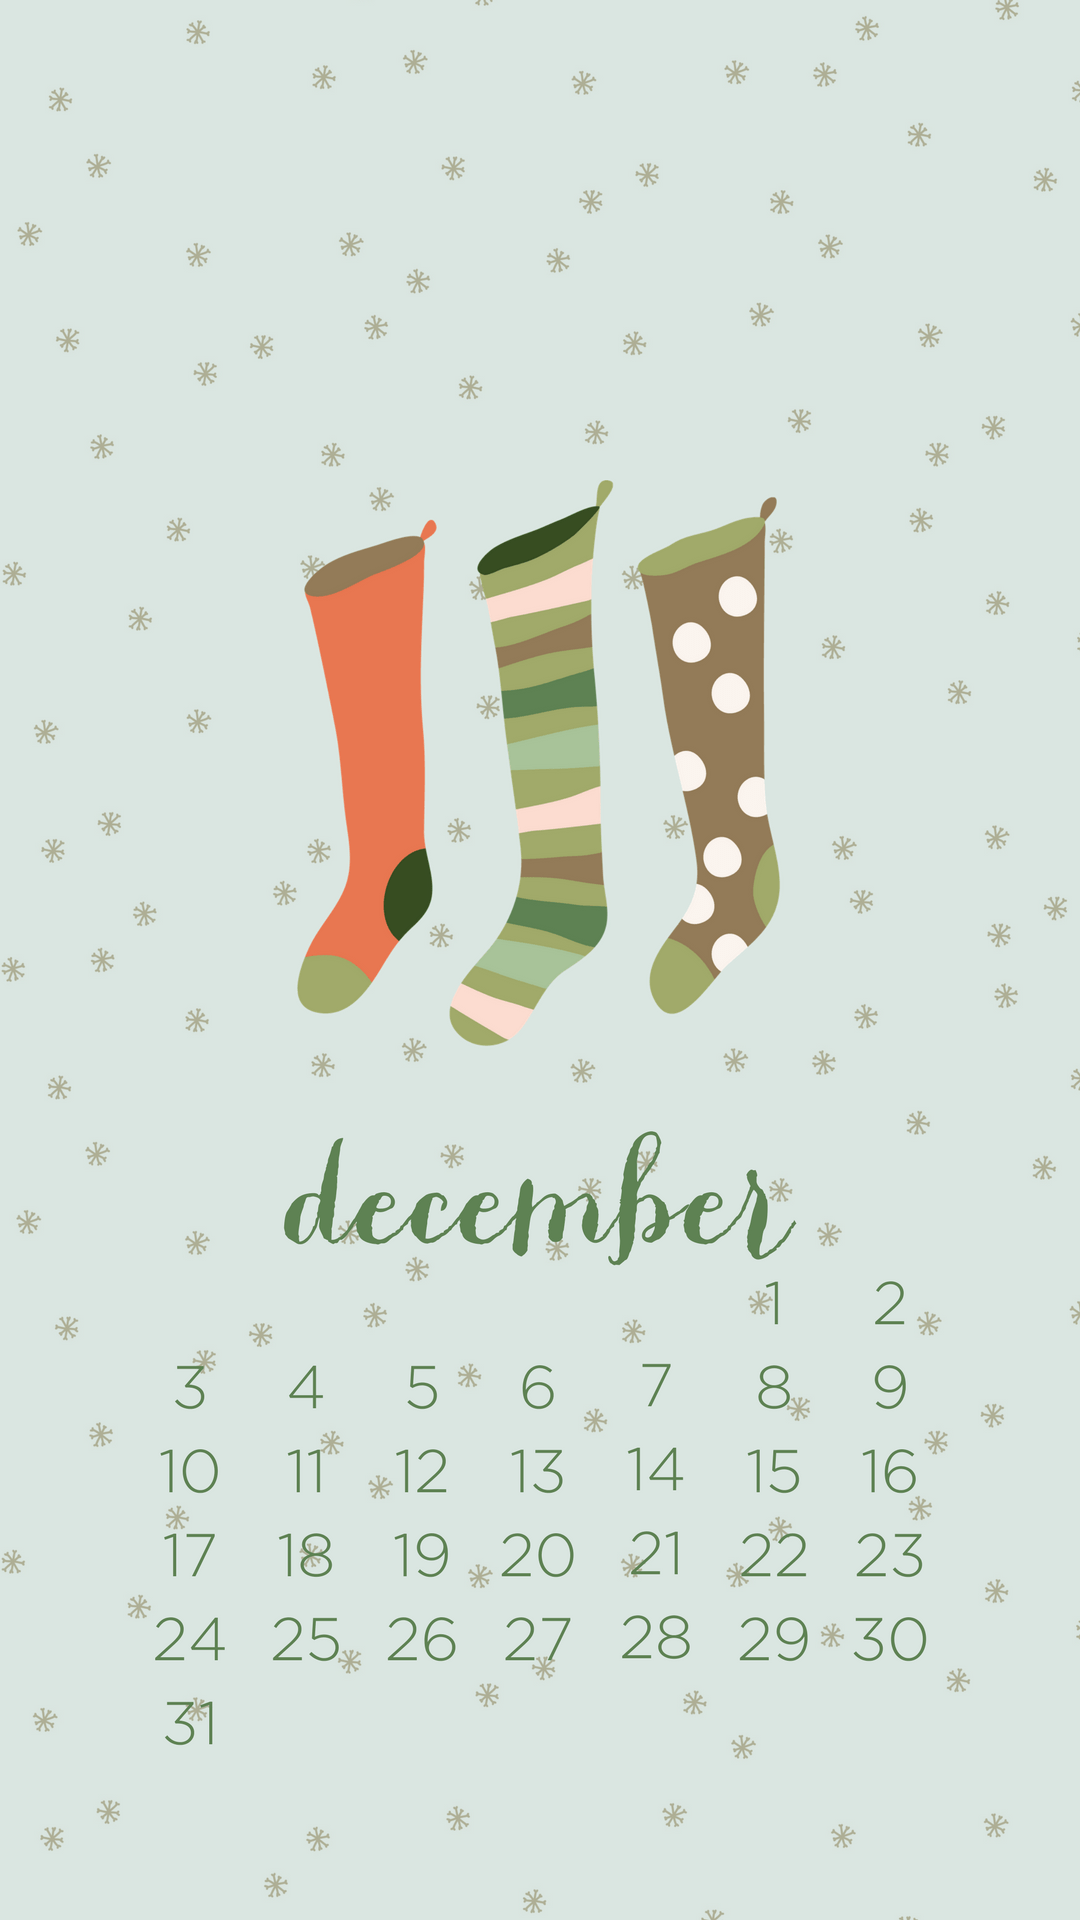 December 2018 Winter Calendar Wallpaper